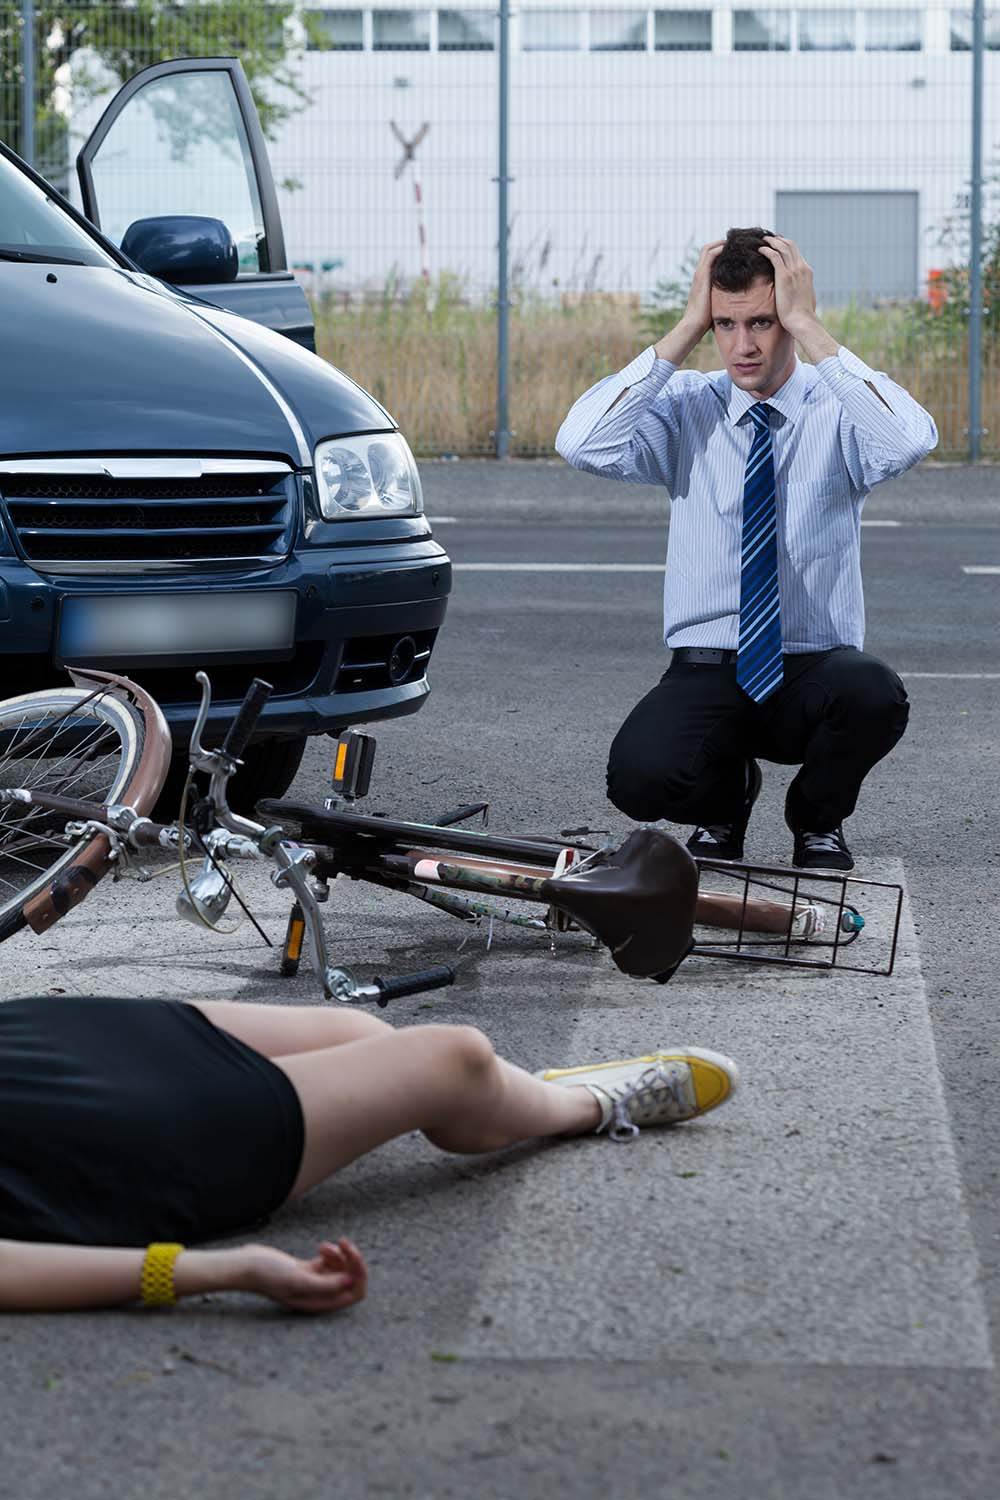 Bicycle Accident Attorneys, Bicycle Accidents